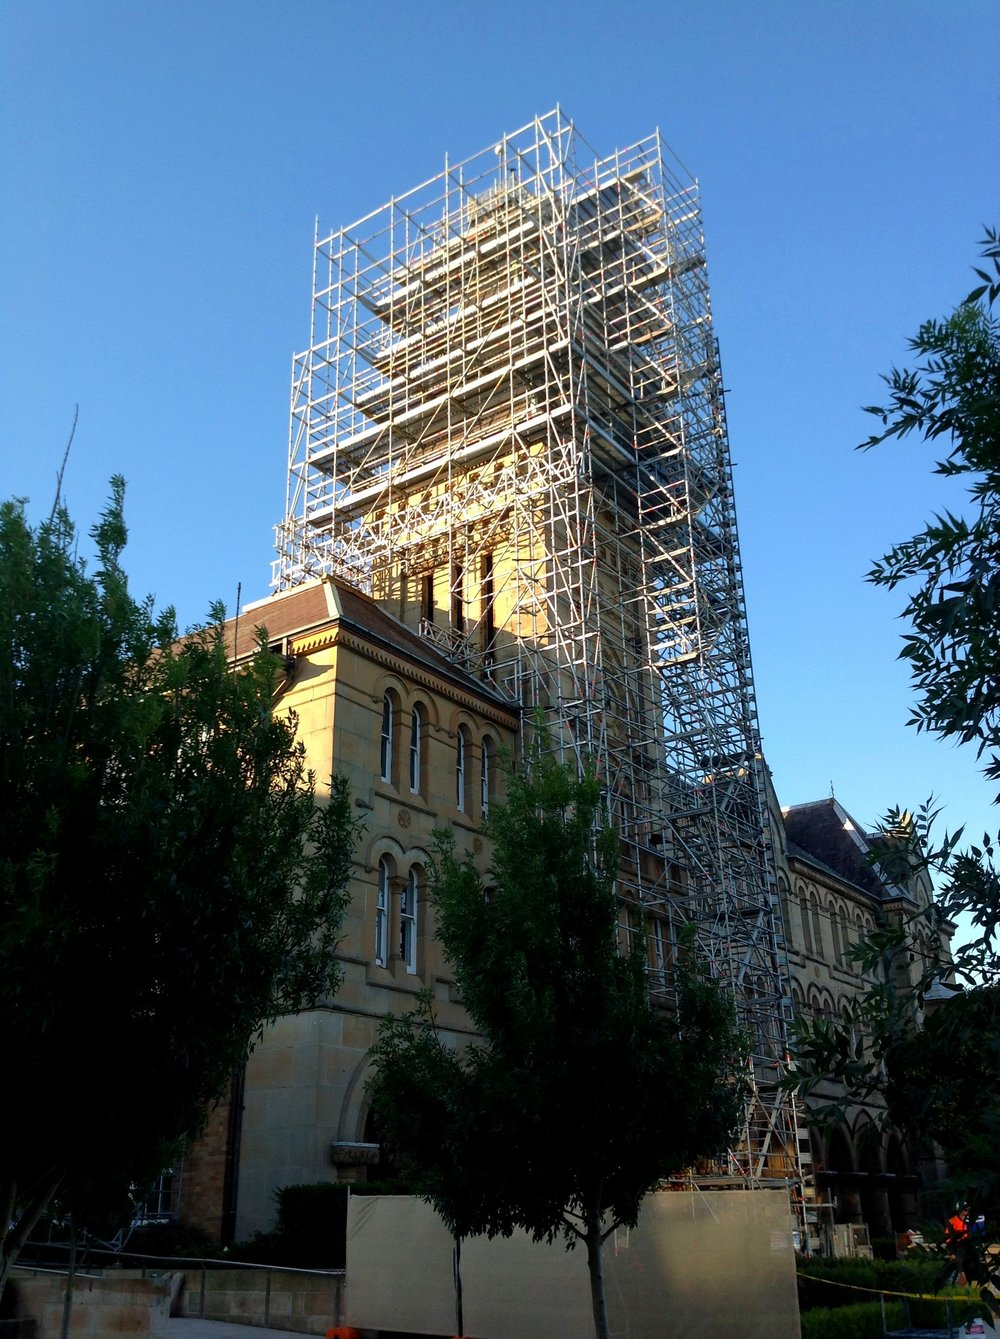 Newington College - This 34m high cantilevered scaffold will provide safe and reliable access for restoration works on the spire of the Founders Building at Newington College this summer.This project was completed last week, a wonderful achievement to finish out the working year.